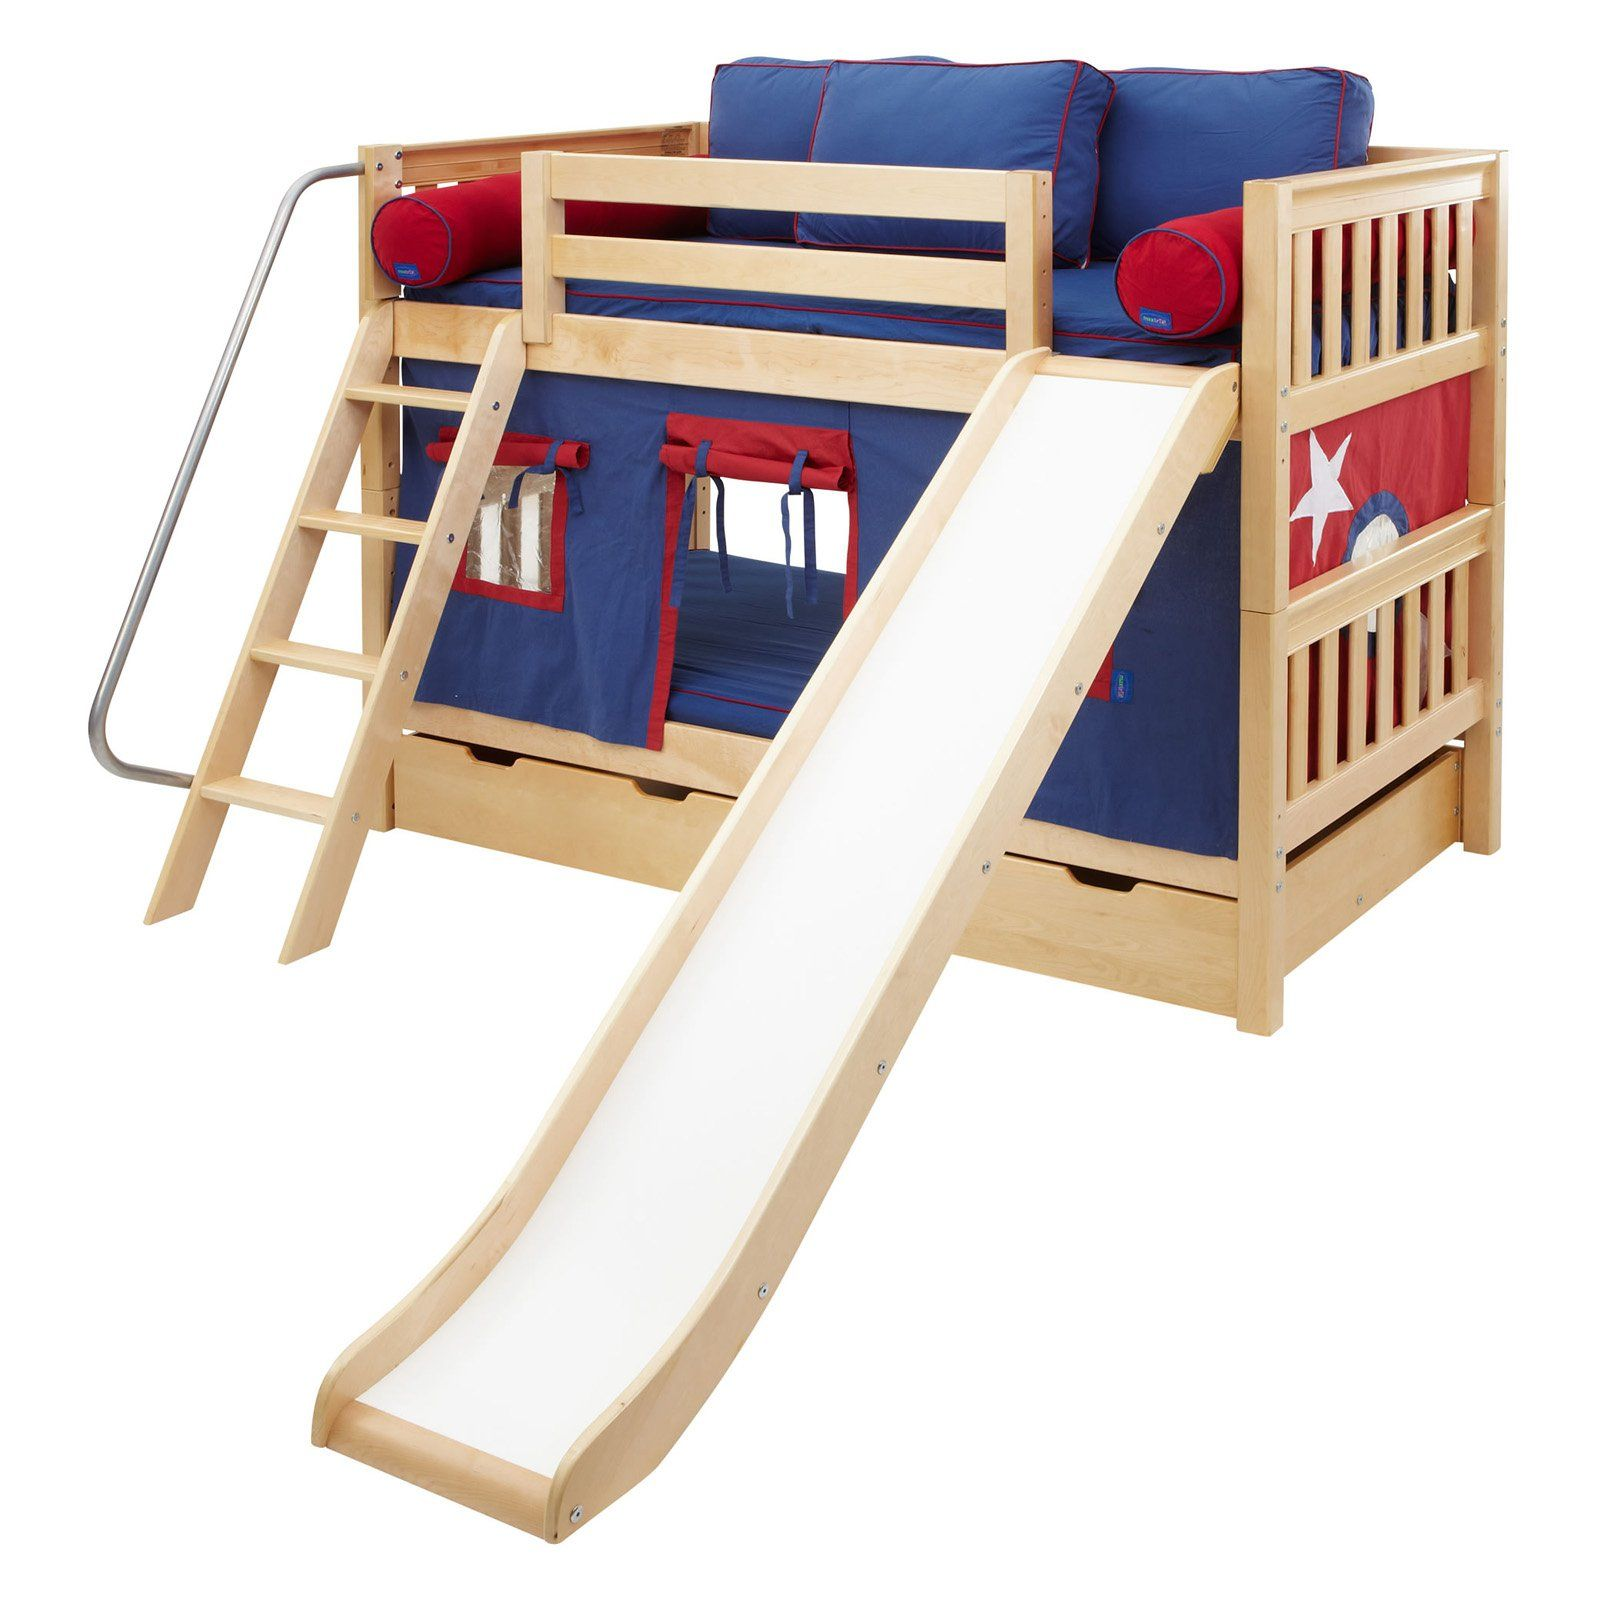 Twin low loft bed with slide  Laugh Boy Twin over Twin Slat Slide Tent Bunk Bed  Active little